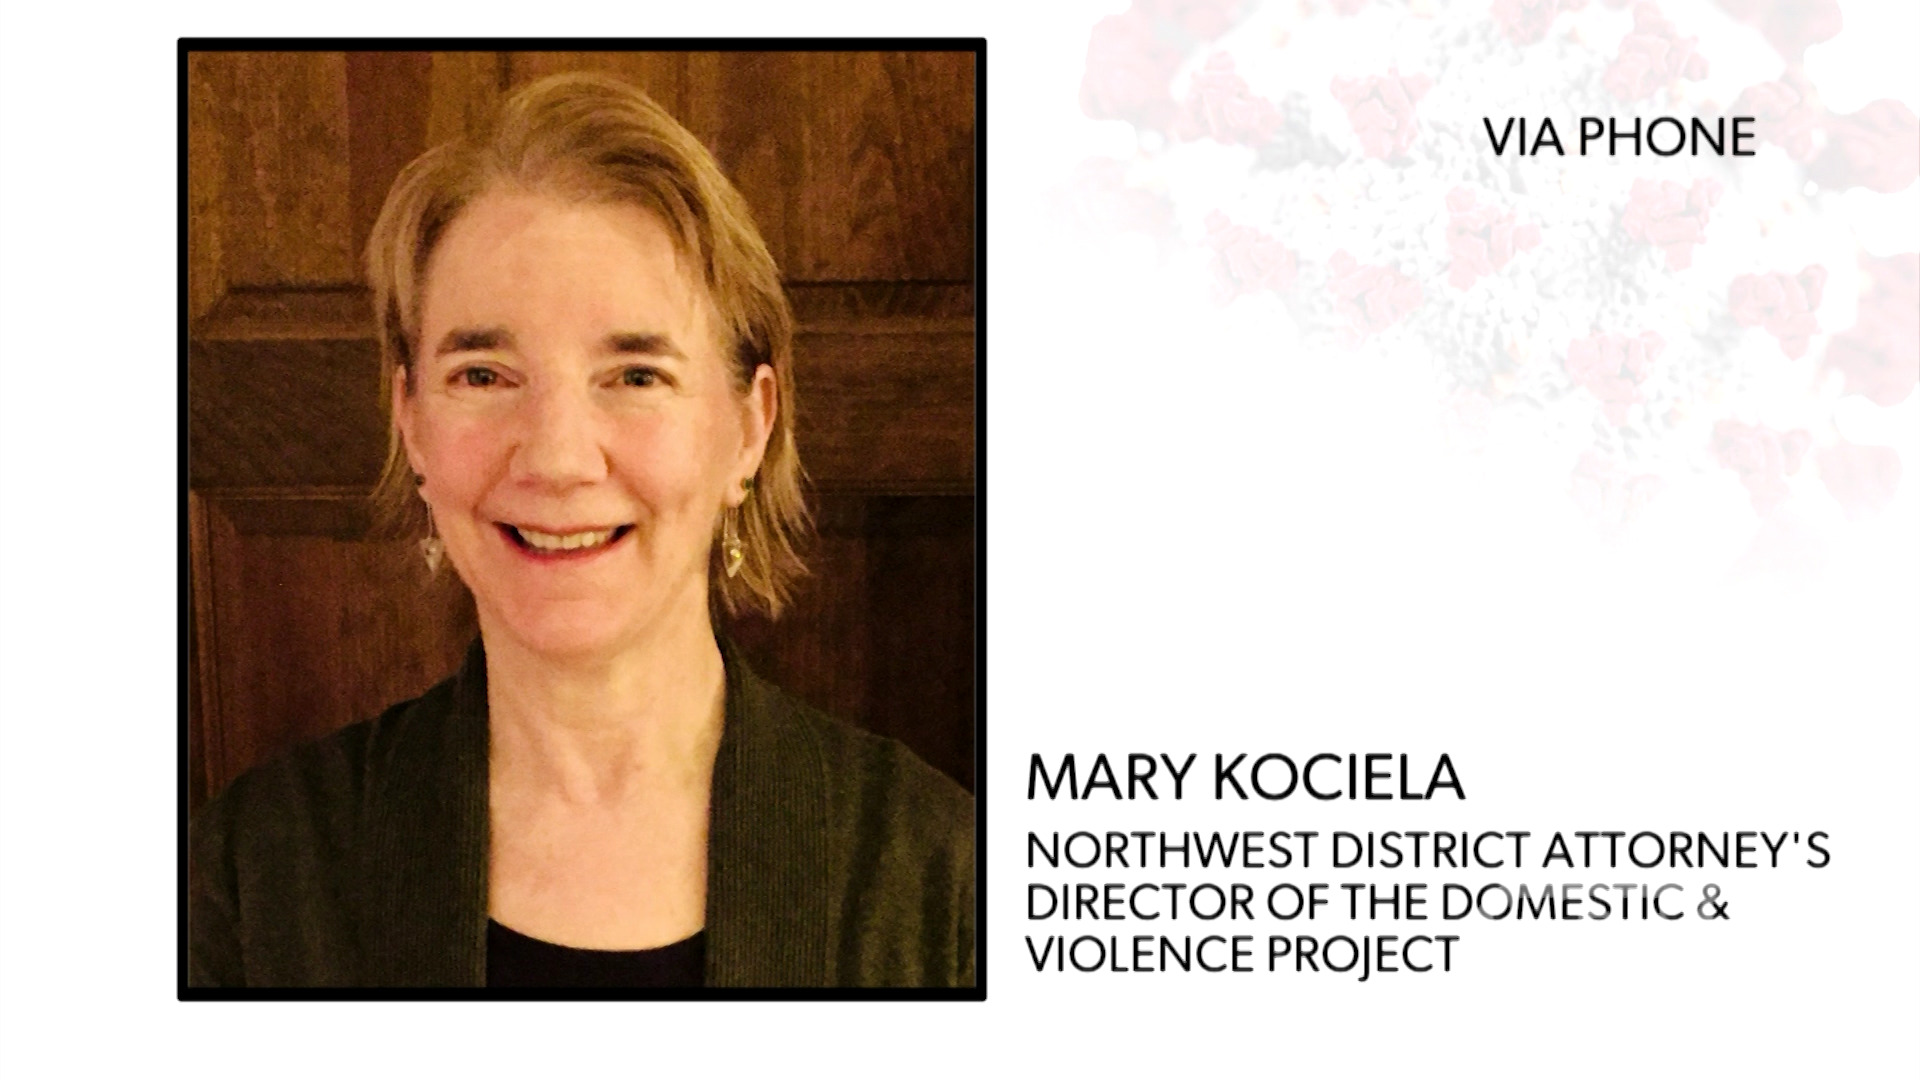 Northwest DA's Domestic Violence Project's Mary Kociela explains that emergency restraining orders are still being processed during the coronavirus outbreak